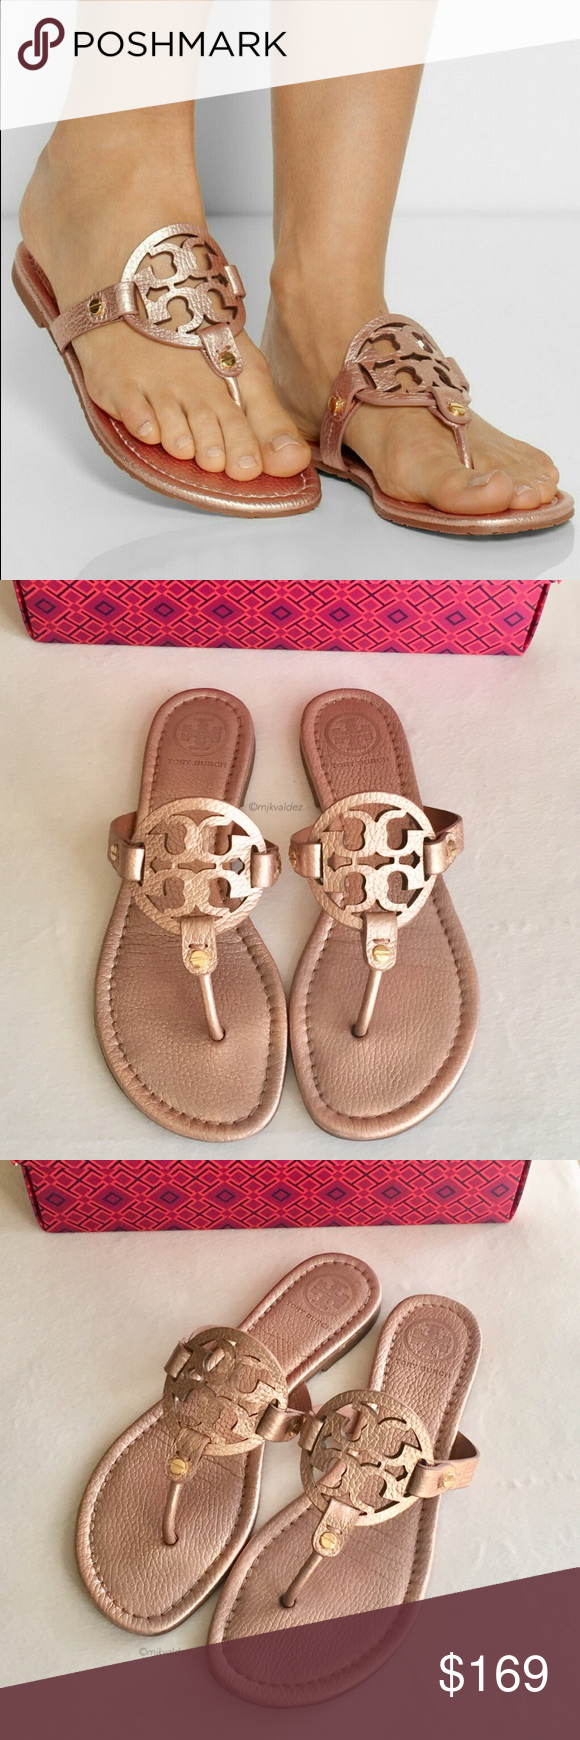 85989a4ed822f RARE Rose Gold Tumbled Leather Miller Sandals RARE and Hard to find Tory  Burch Miller Sandals